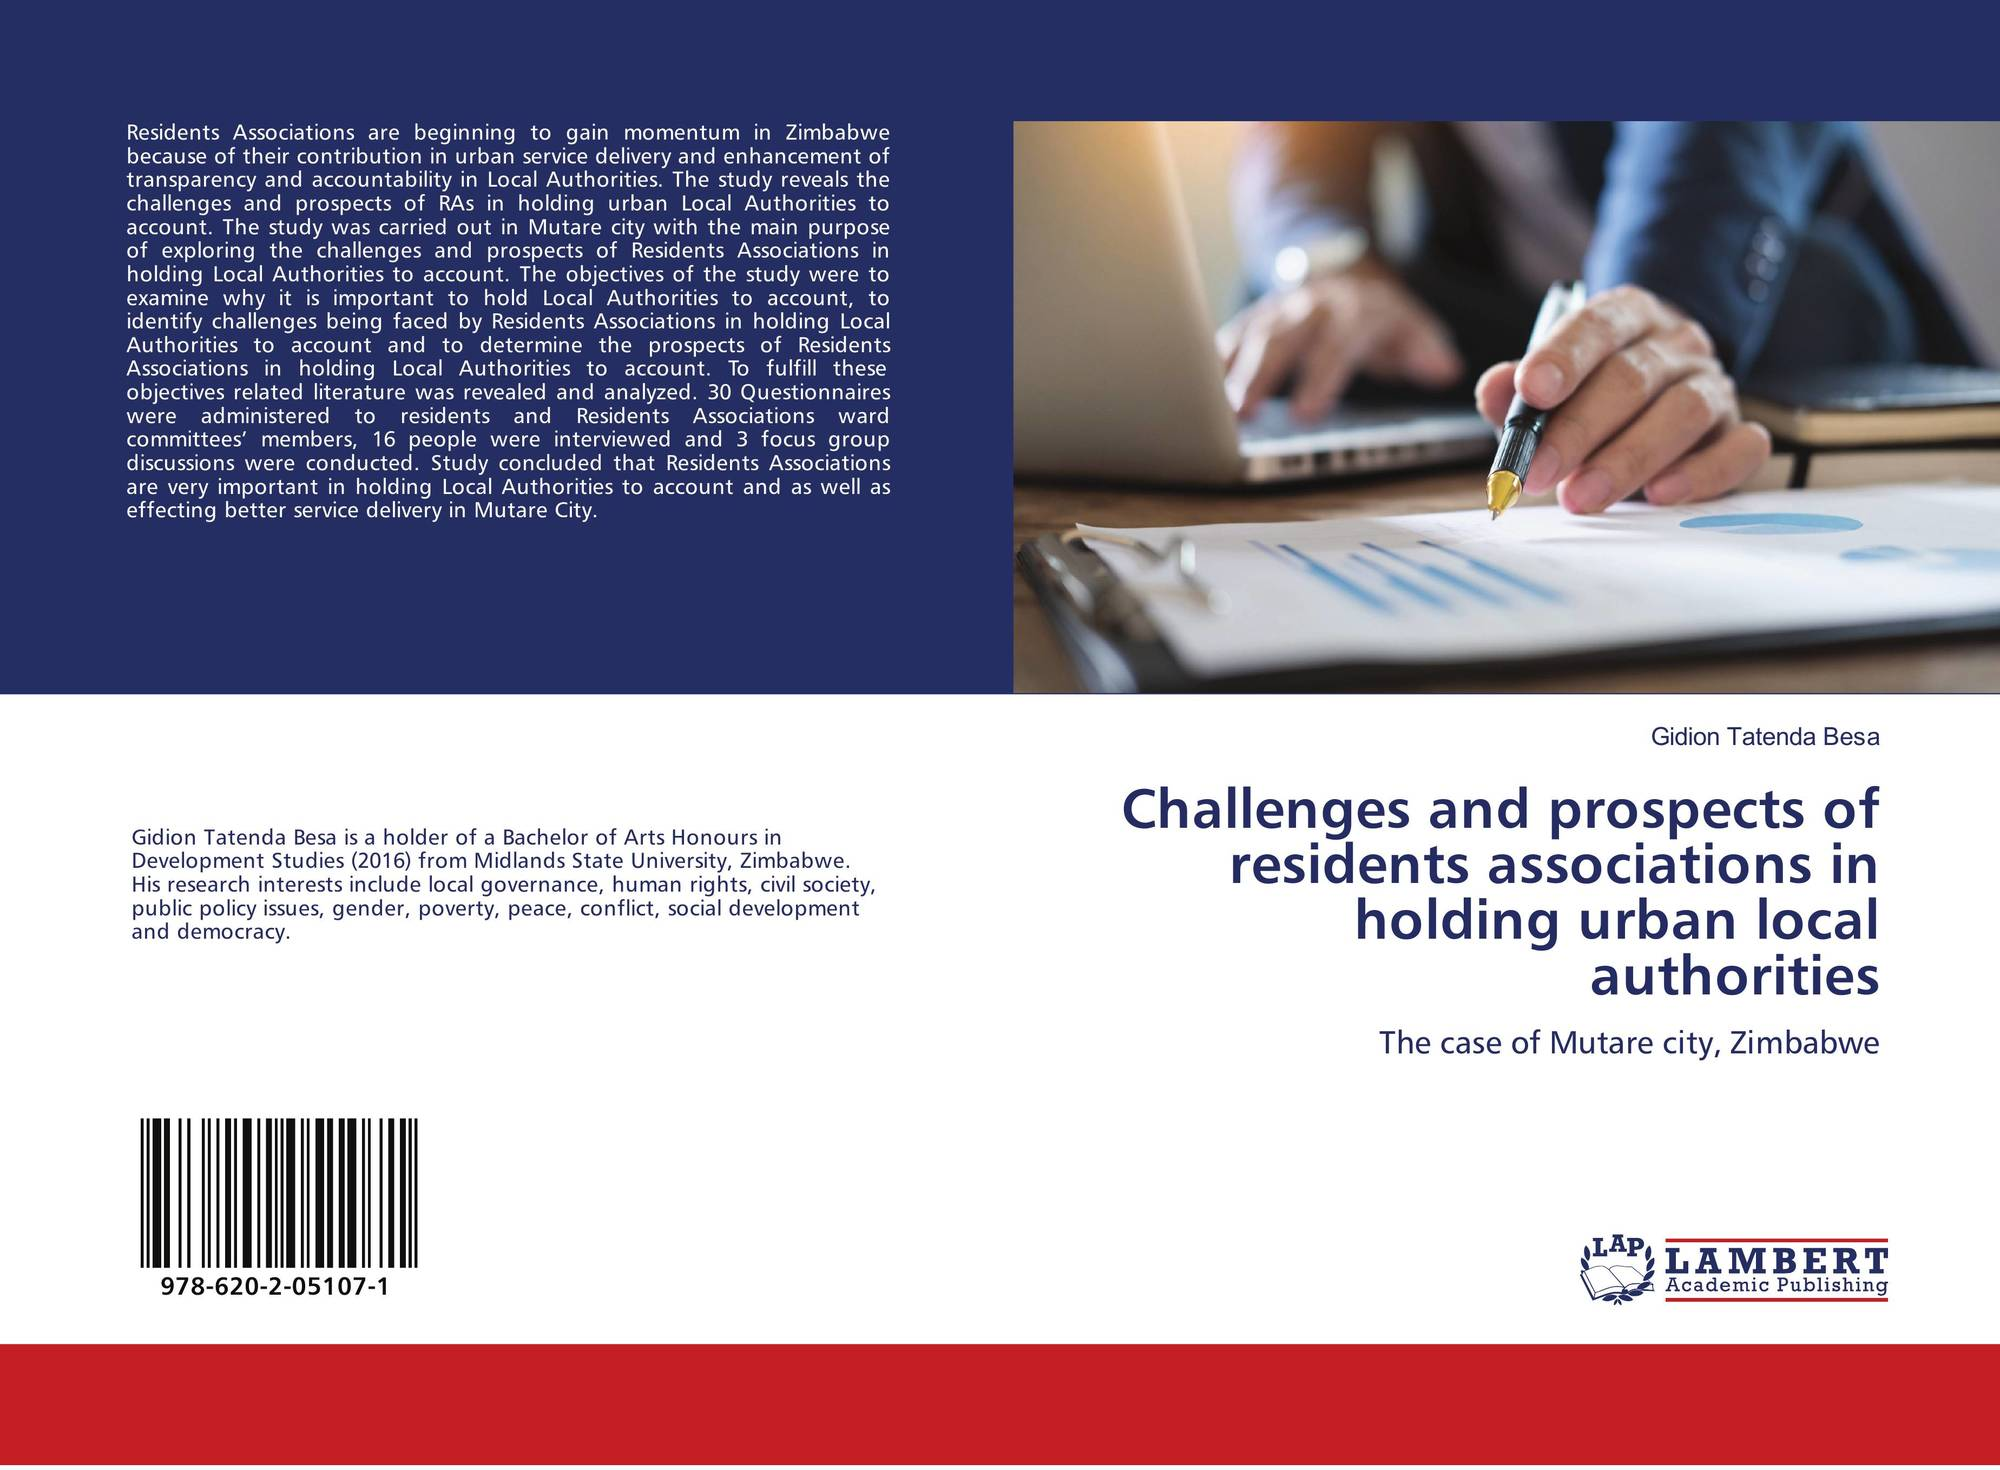 Challenges and prospects of residents associations in